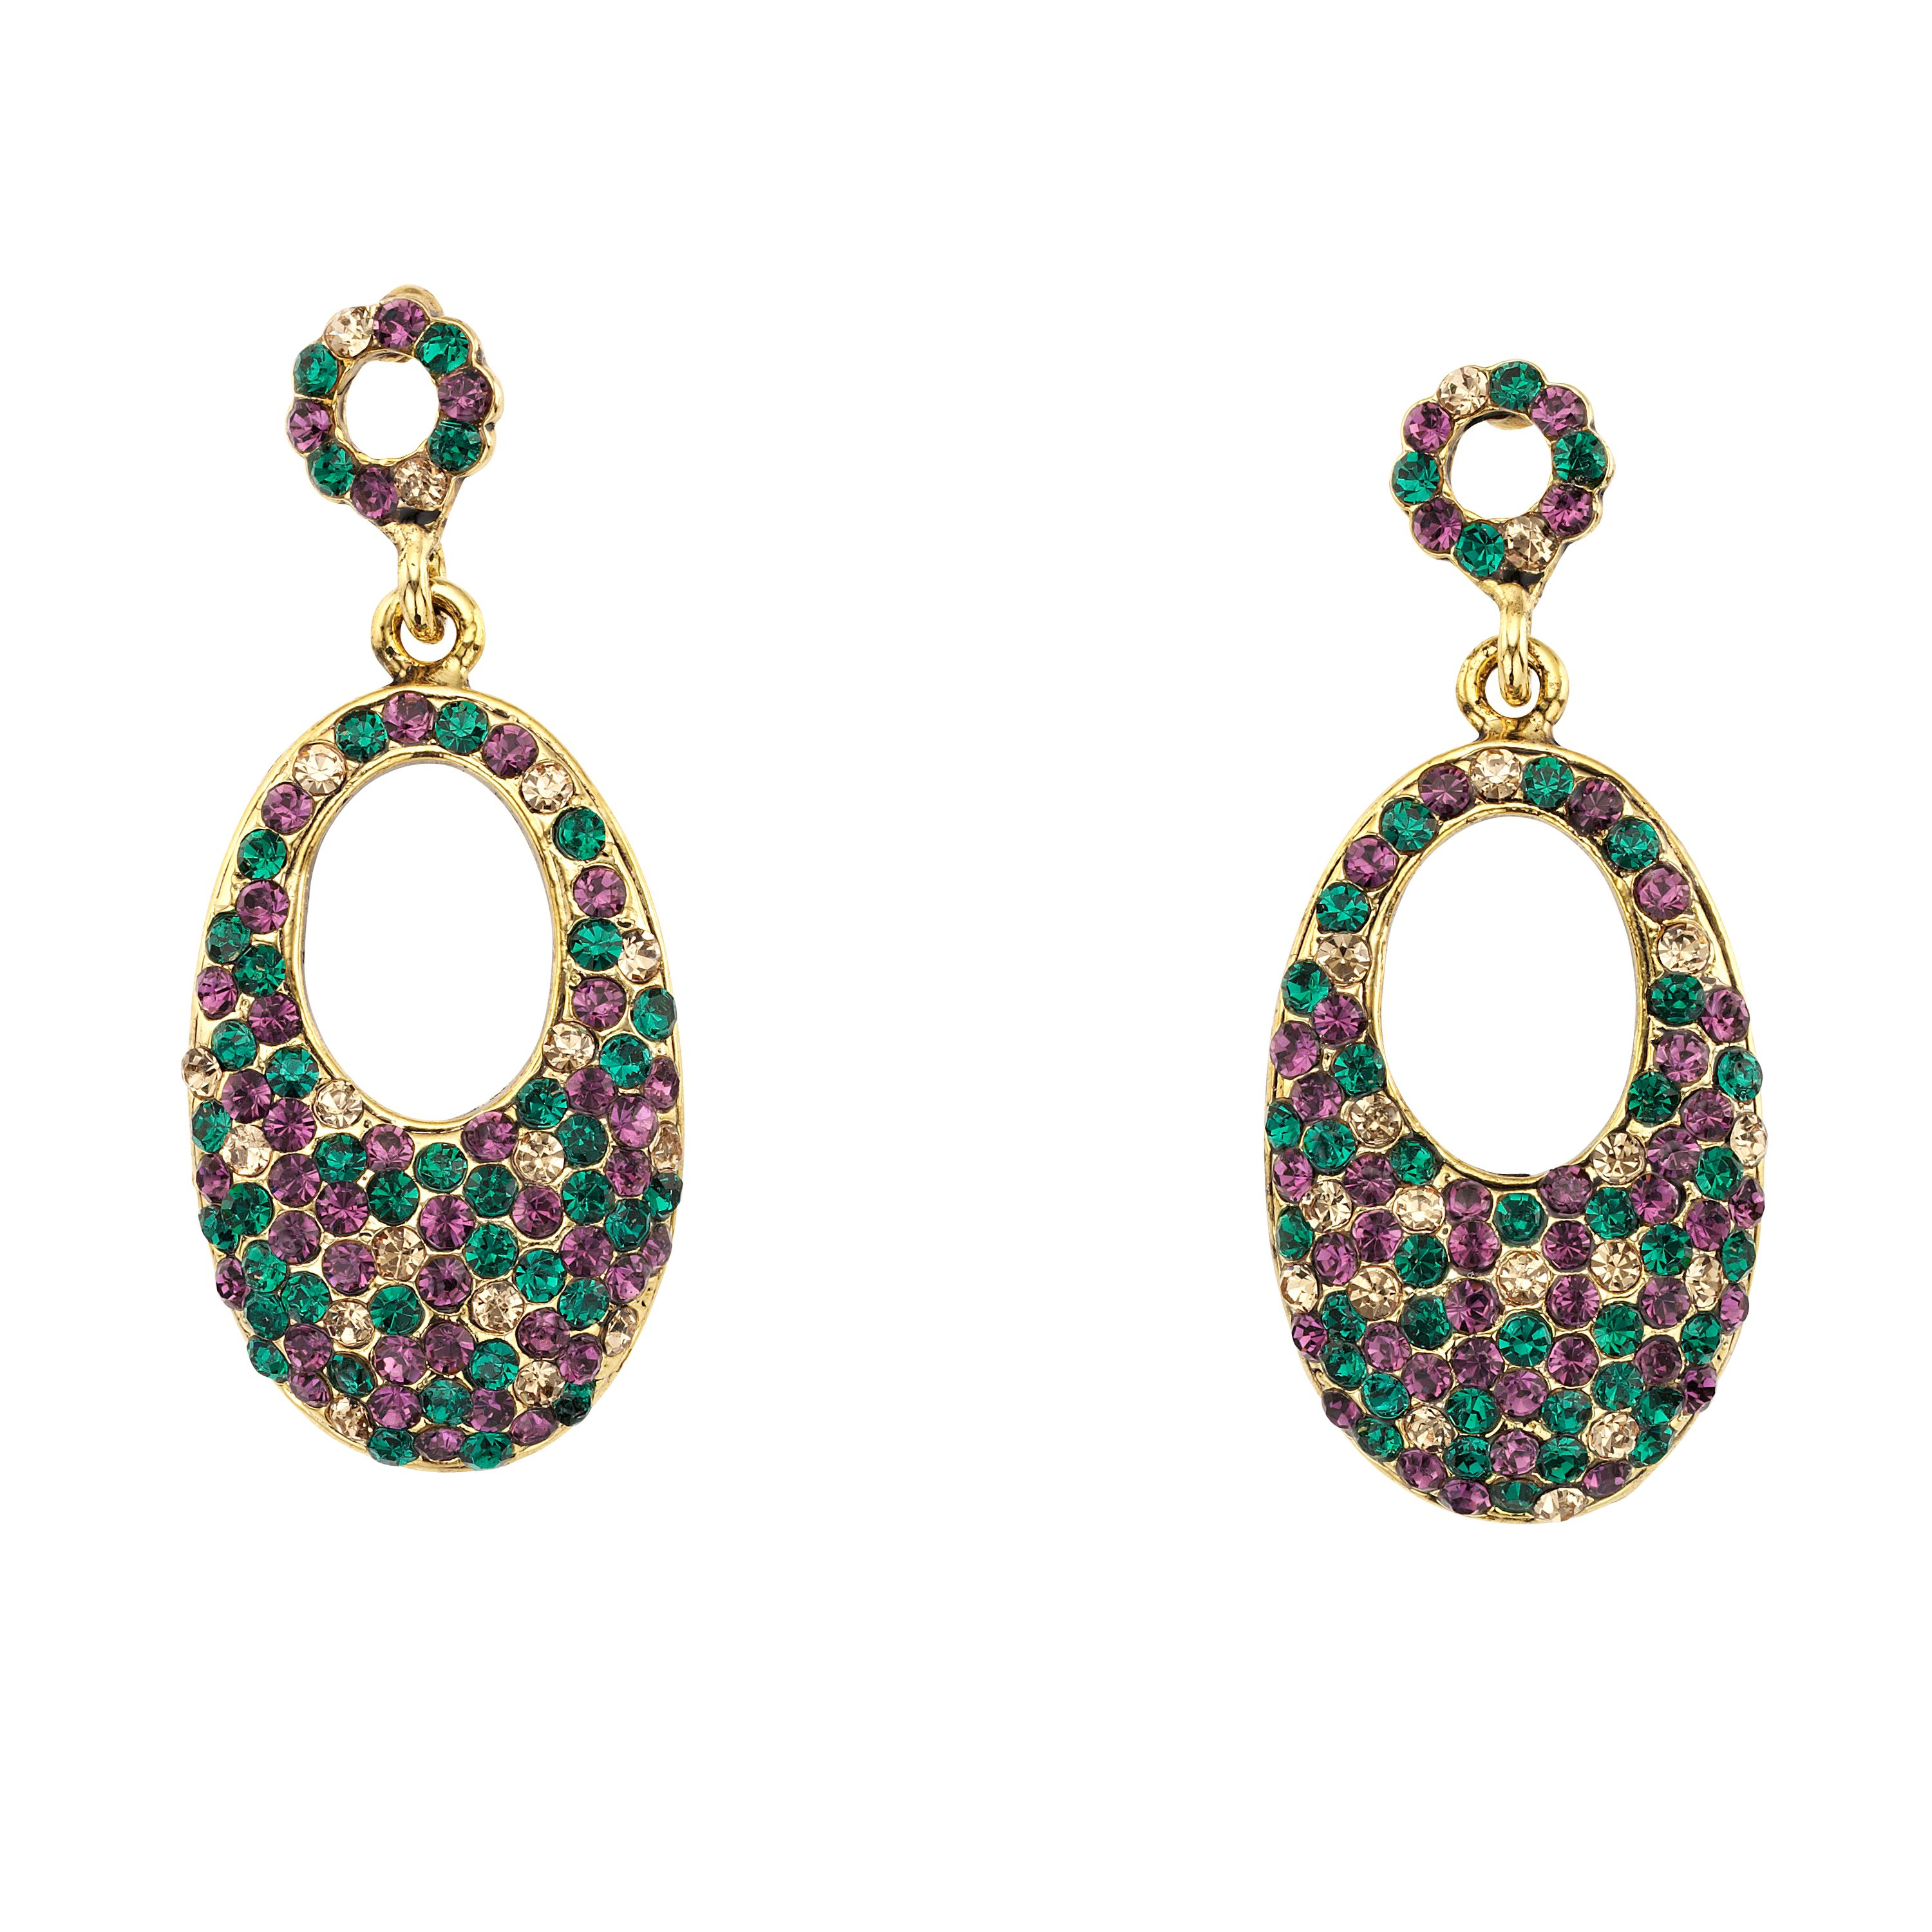 Hollywood oval drop earrings